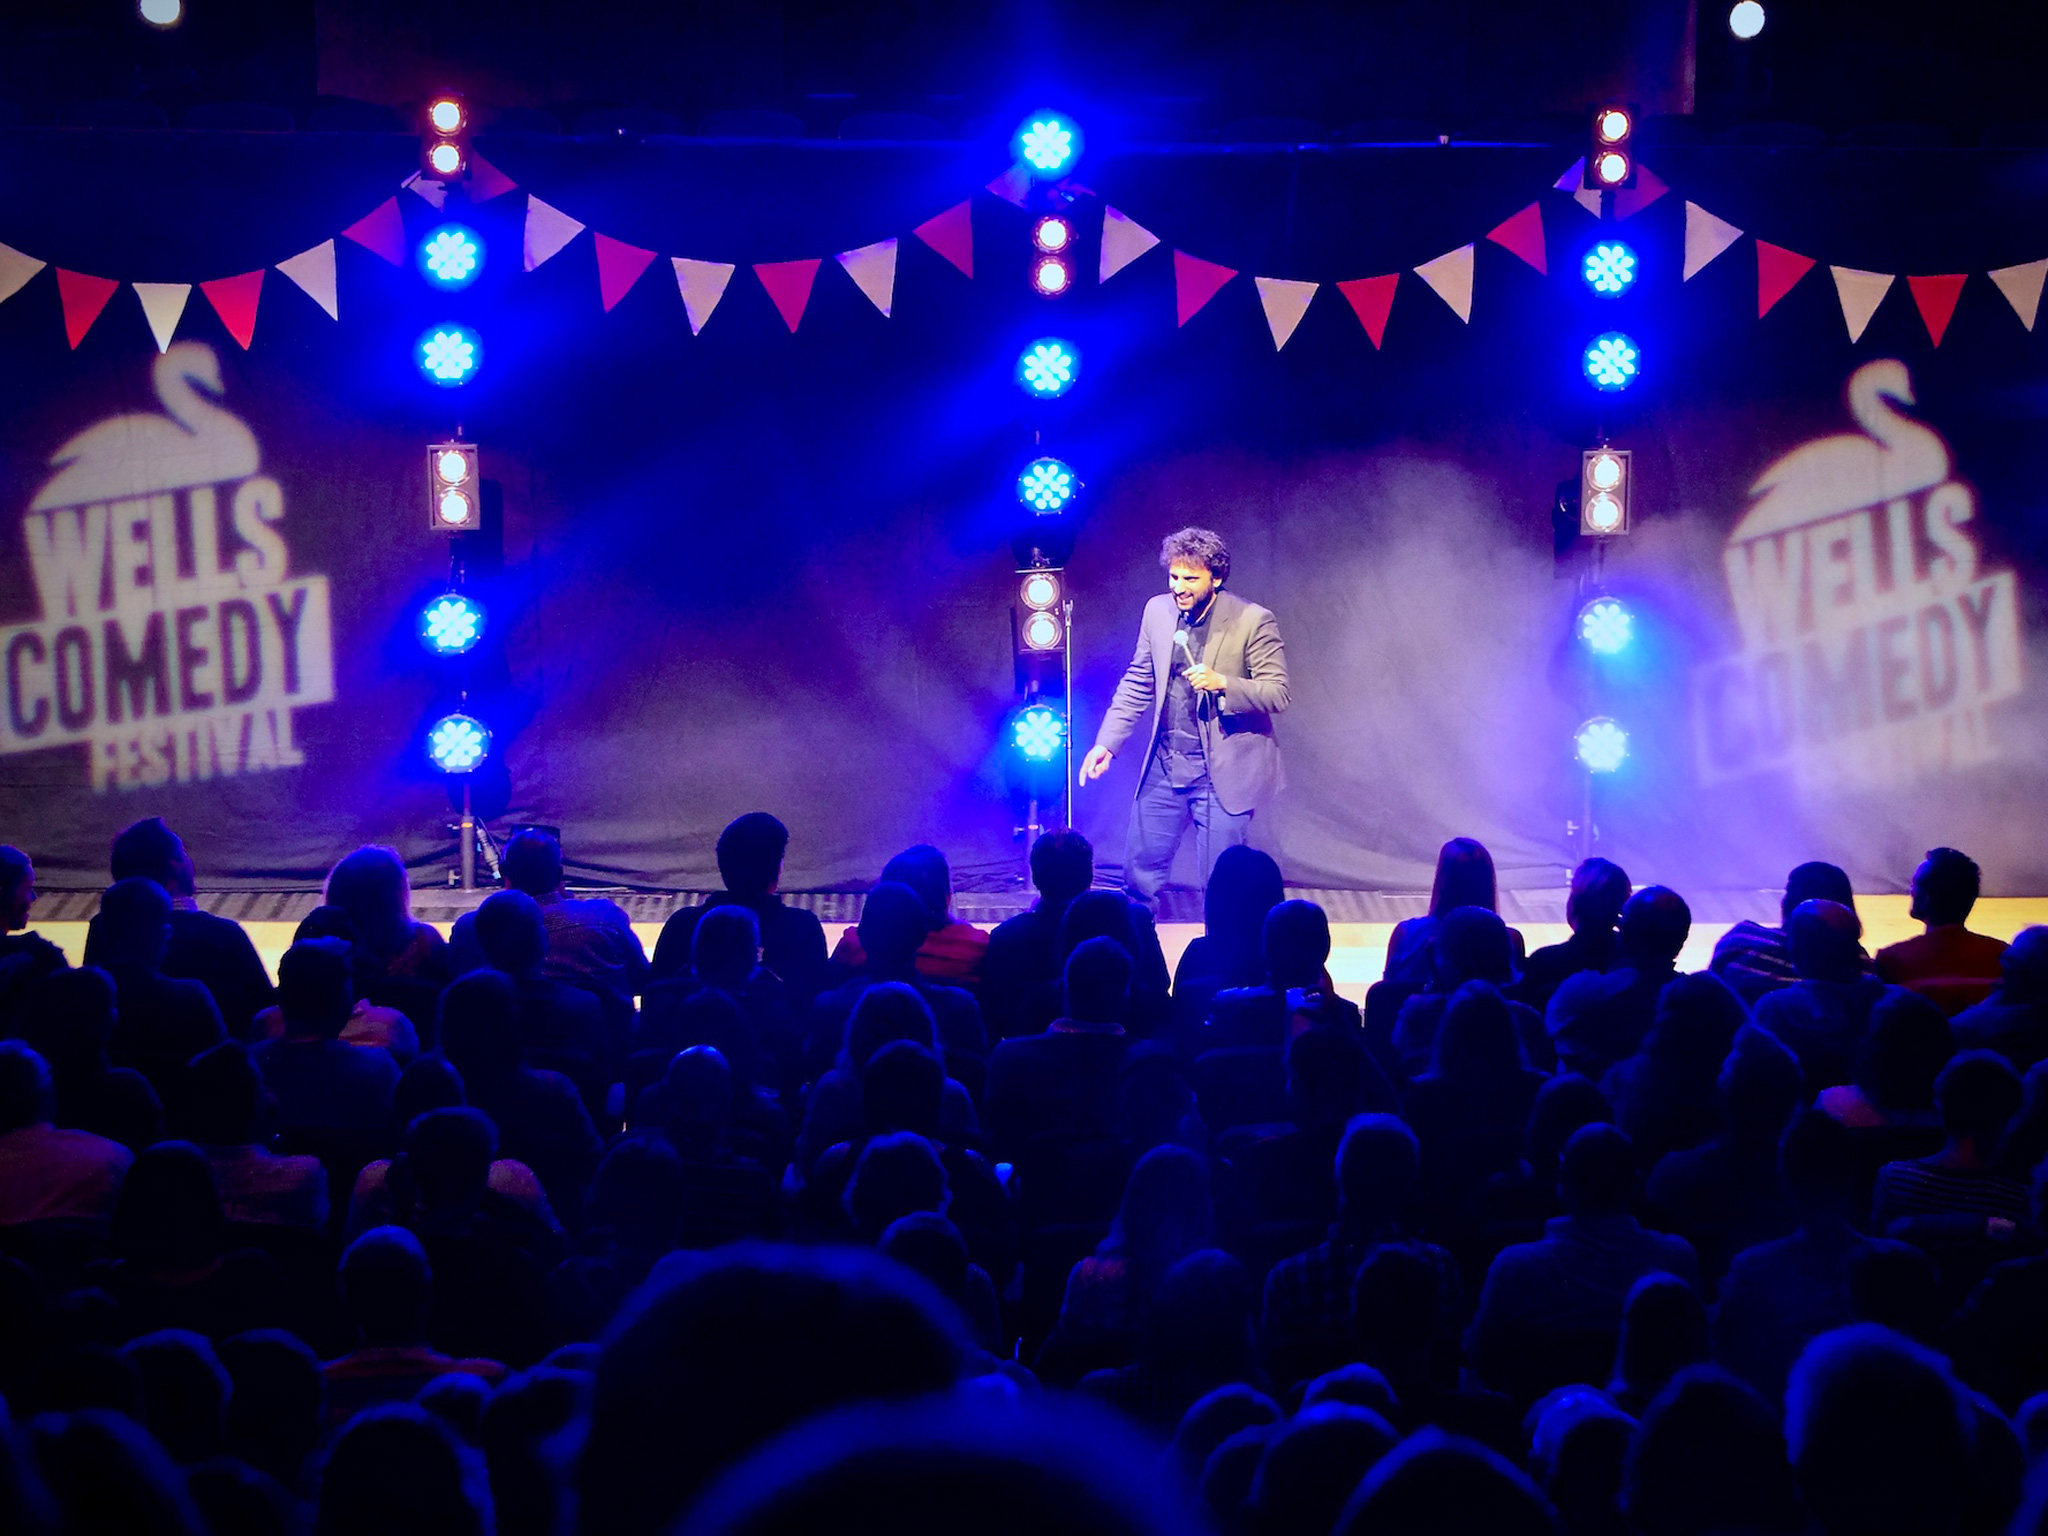 Nish Kumar, Wells Comedy Festival. Photo: Matthew Highton